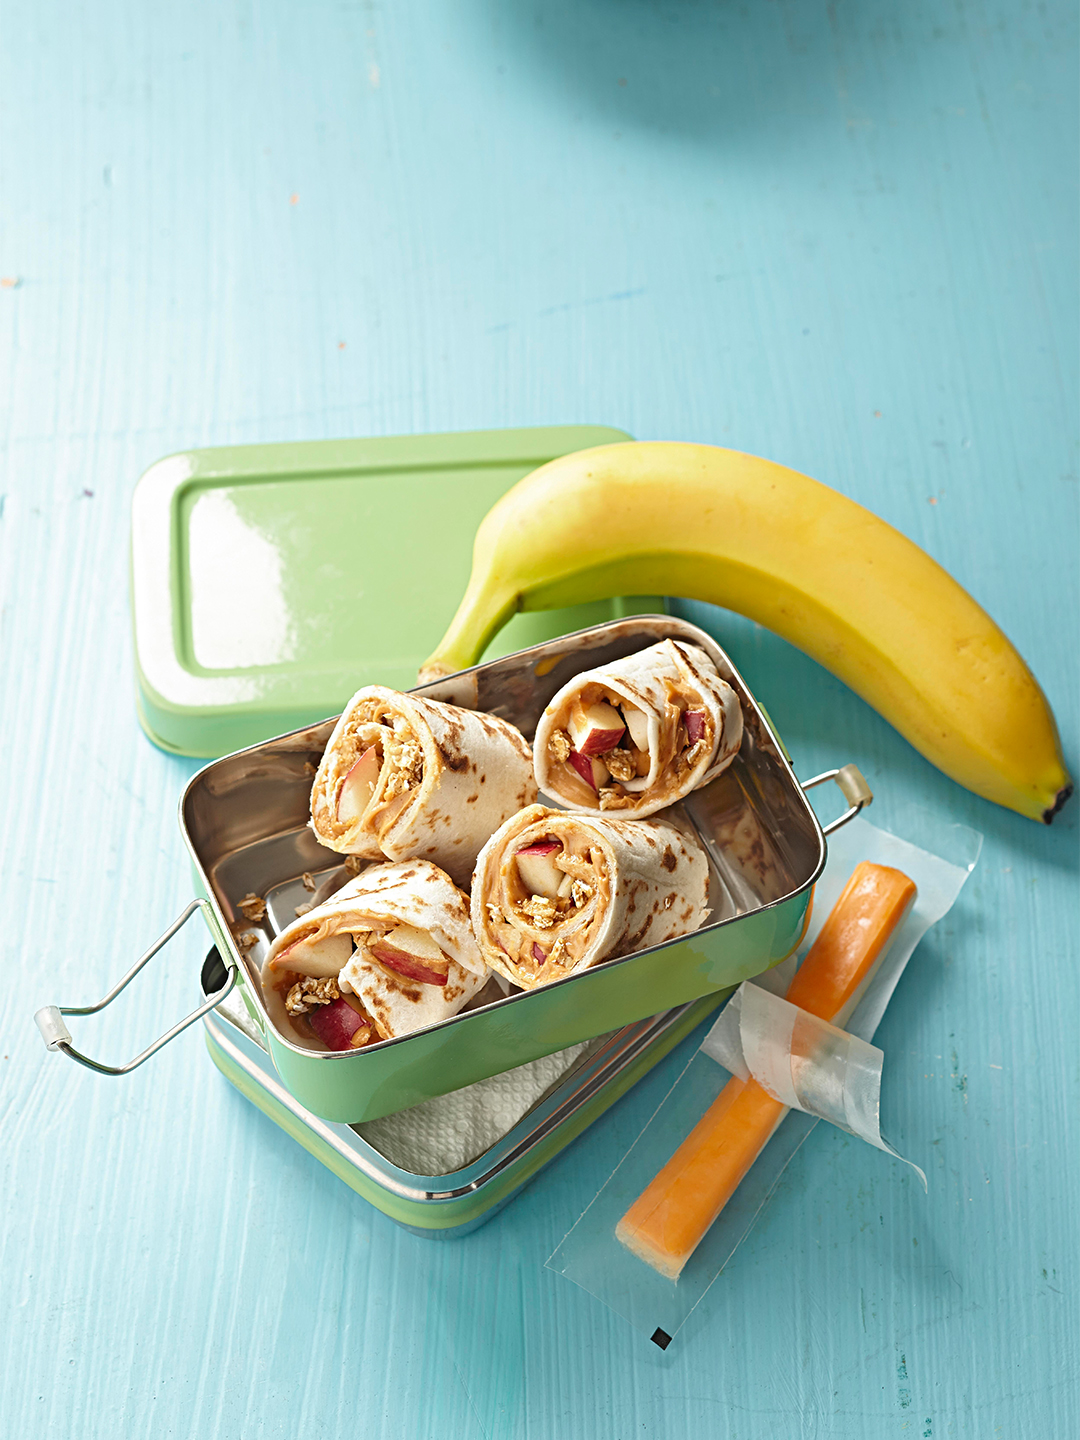 crunchy peanut butter and apple wrap in lunch box with banana and cheese stick